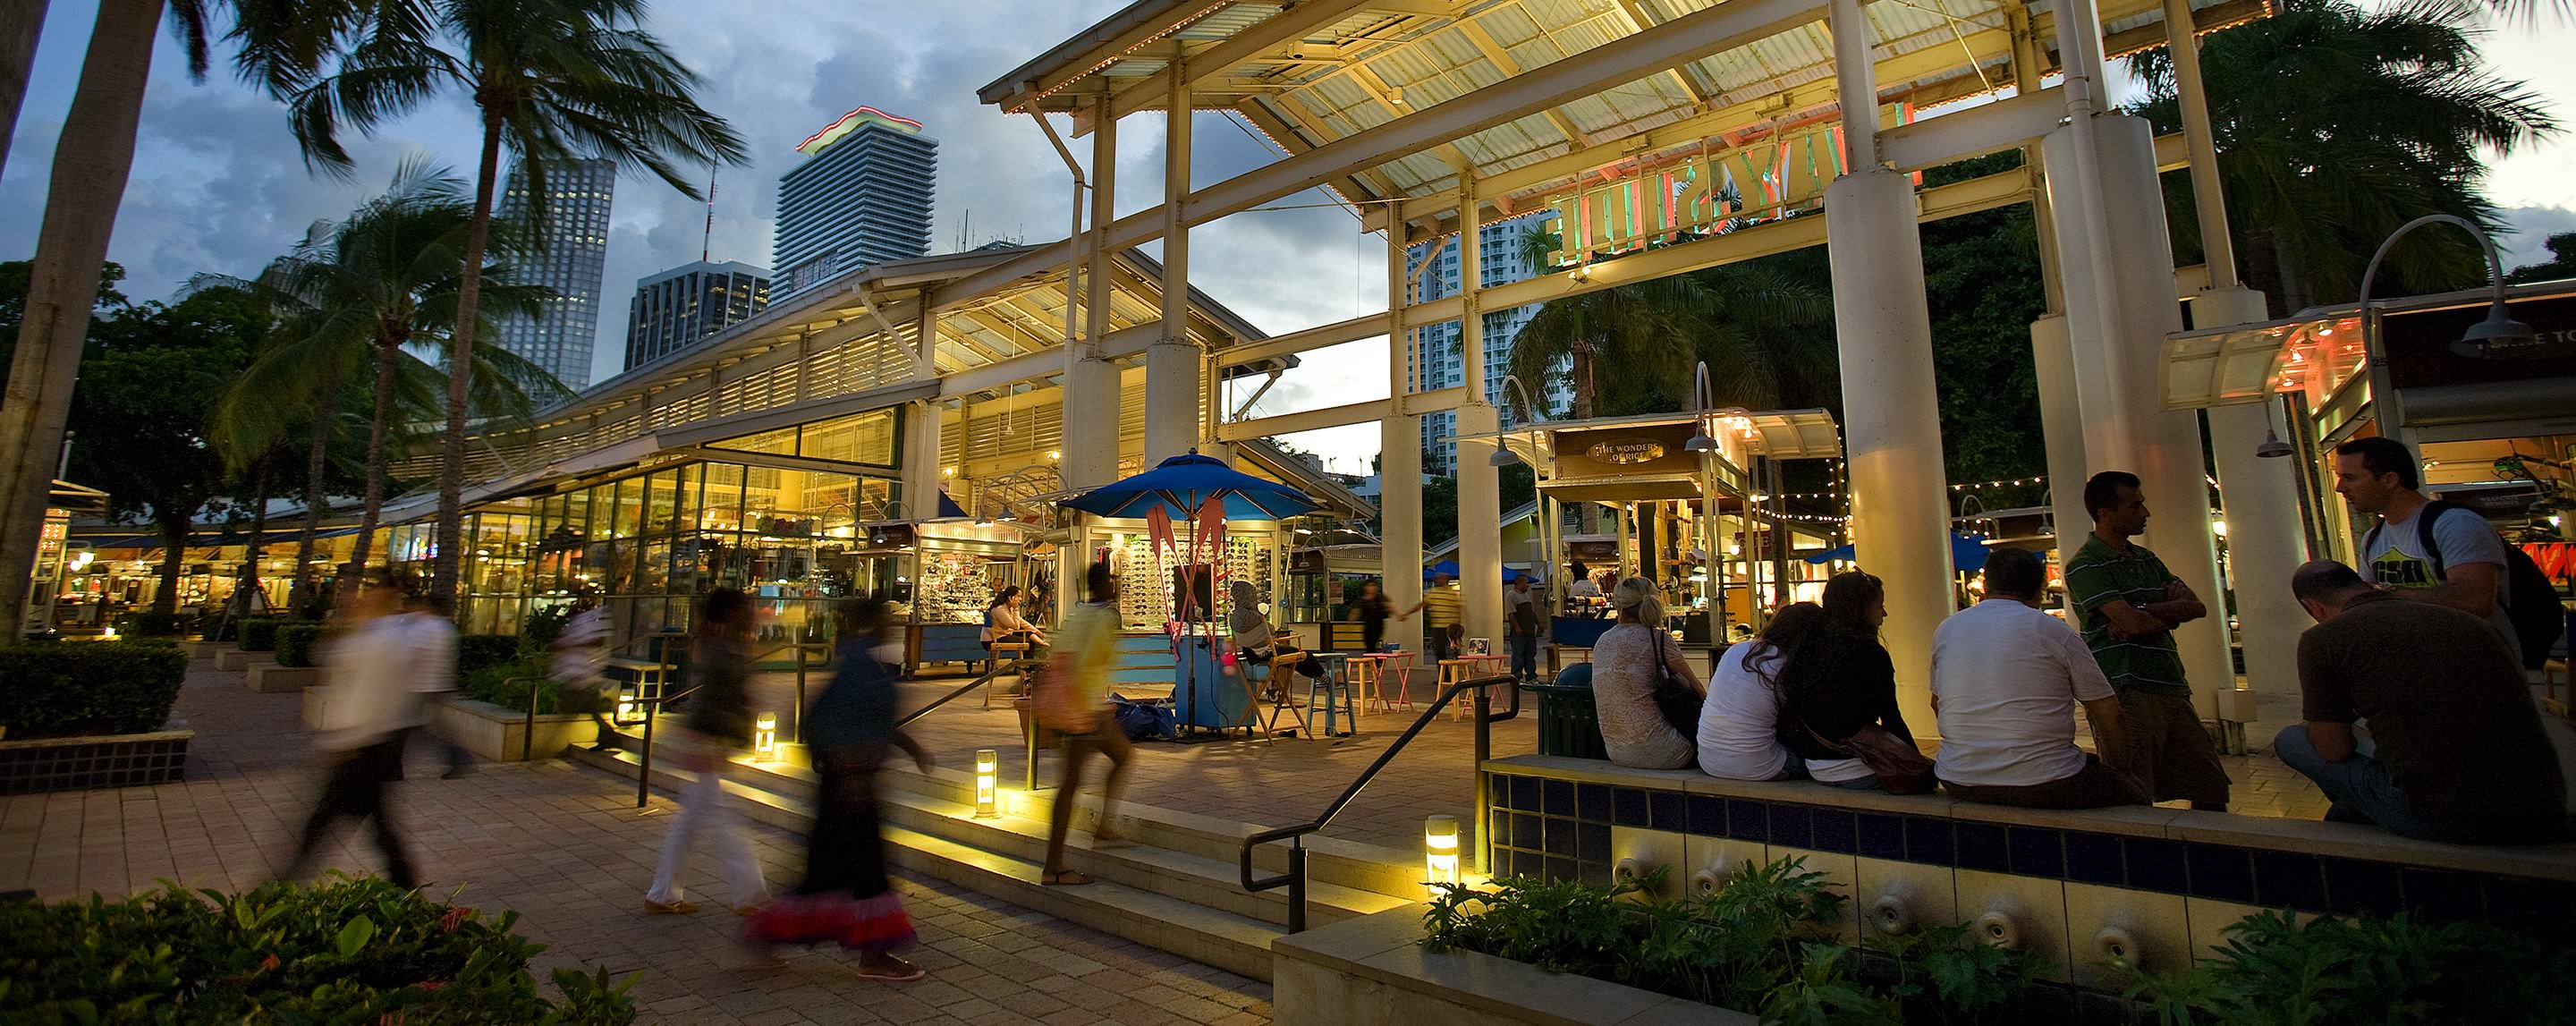 space lighting miami. a busy outside common area at bayside marketplace for shoppers to sit and hang out with space lighting miami t